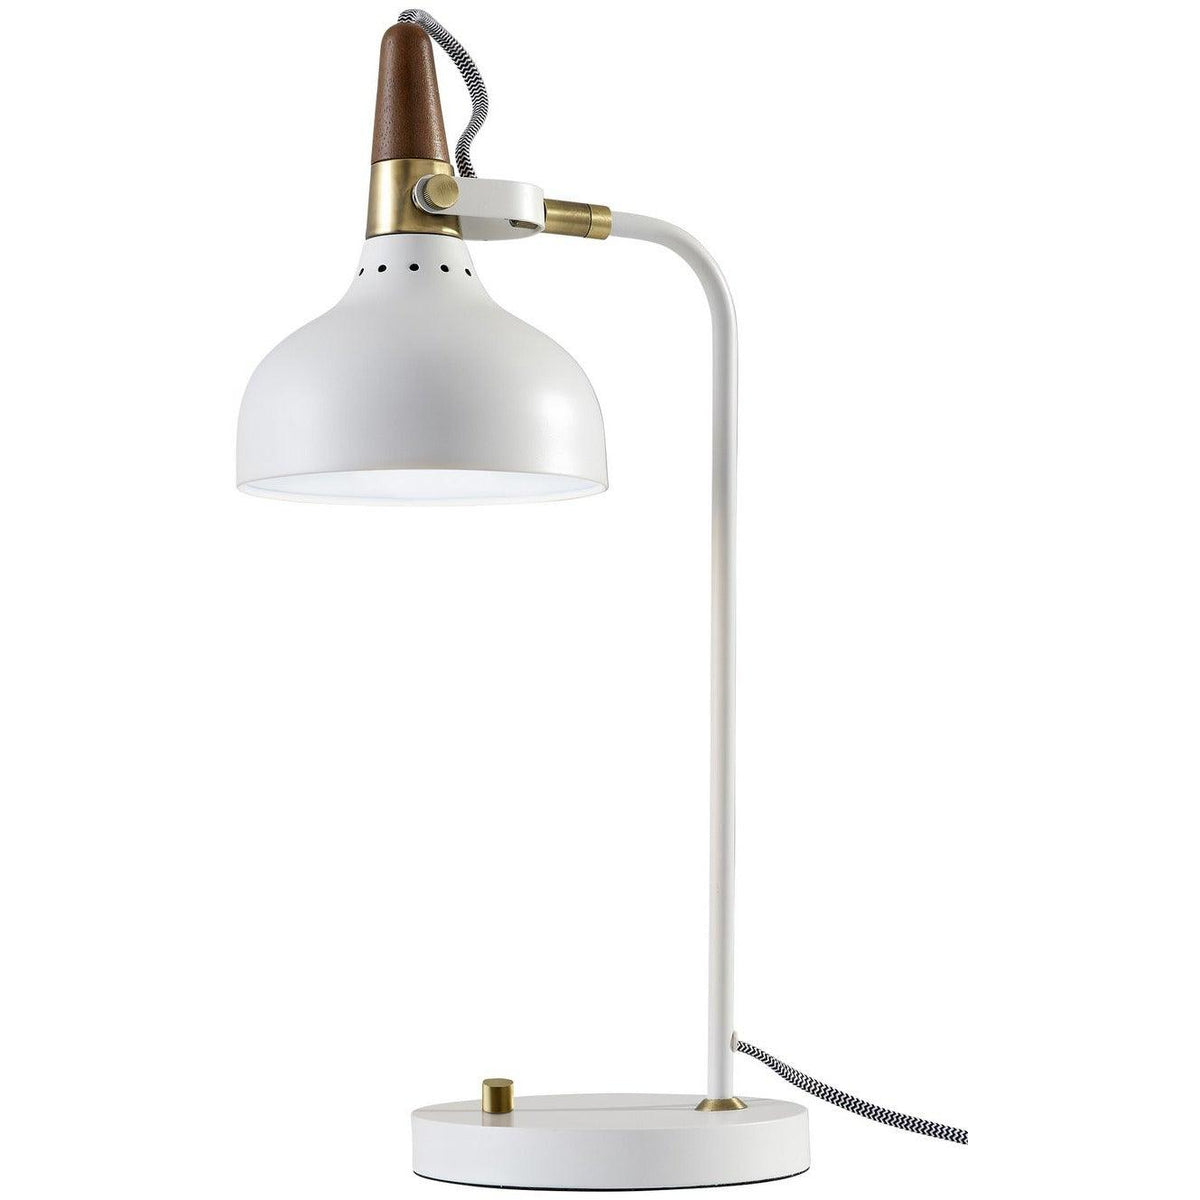 Adesso Home - 3535-02 - One Light Table Lamp - Brunswick - White, Antique Brass/Walnut Rubberwood